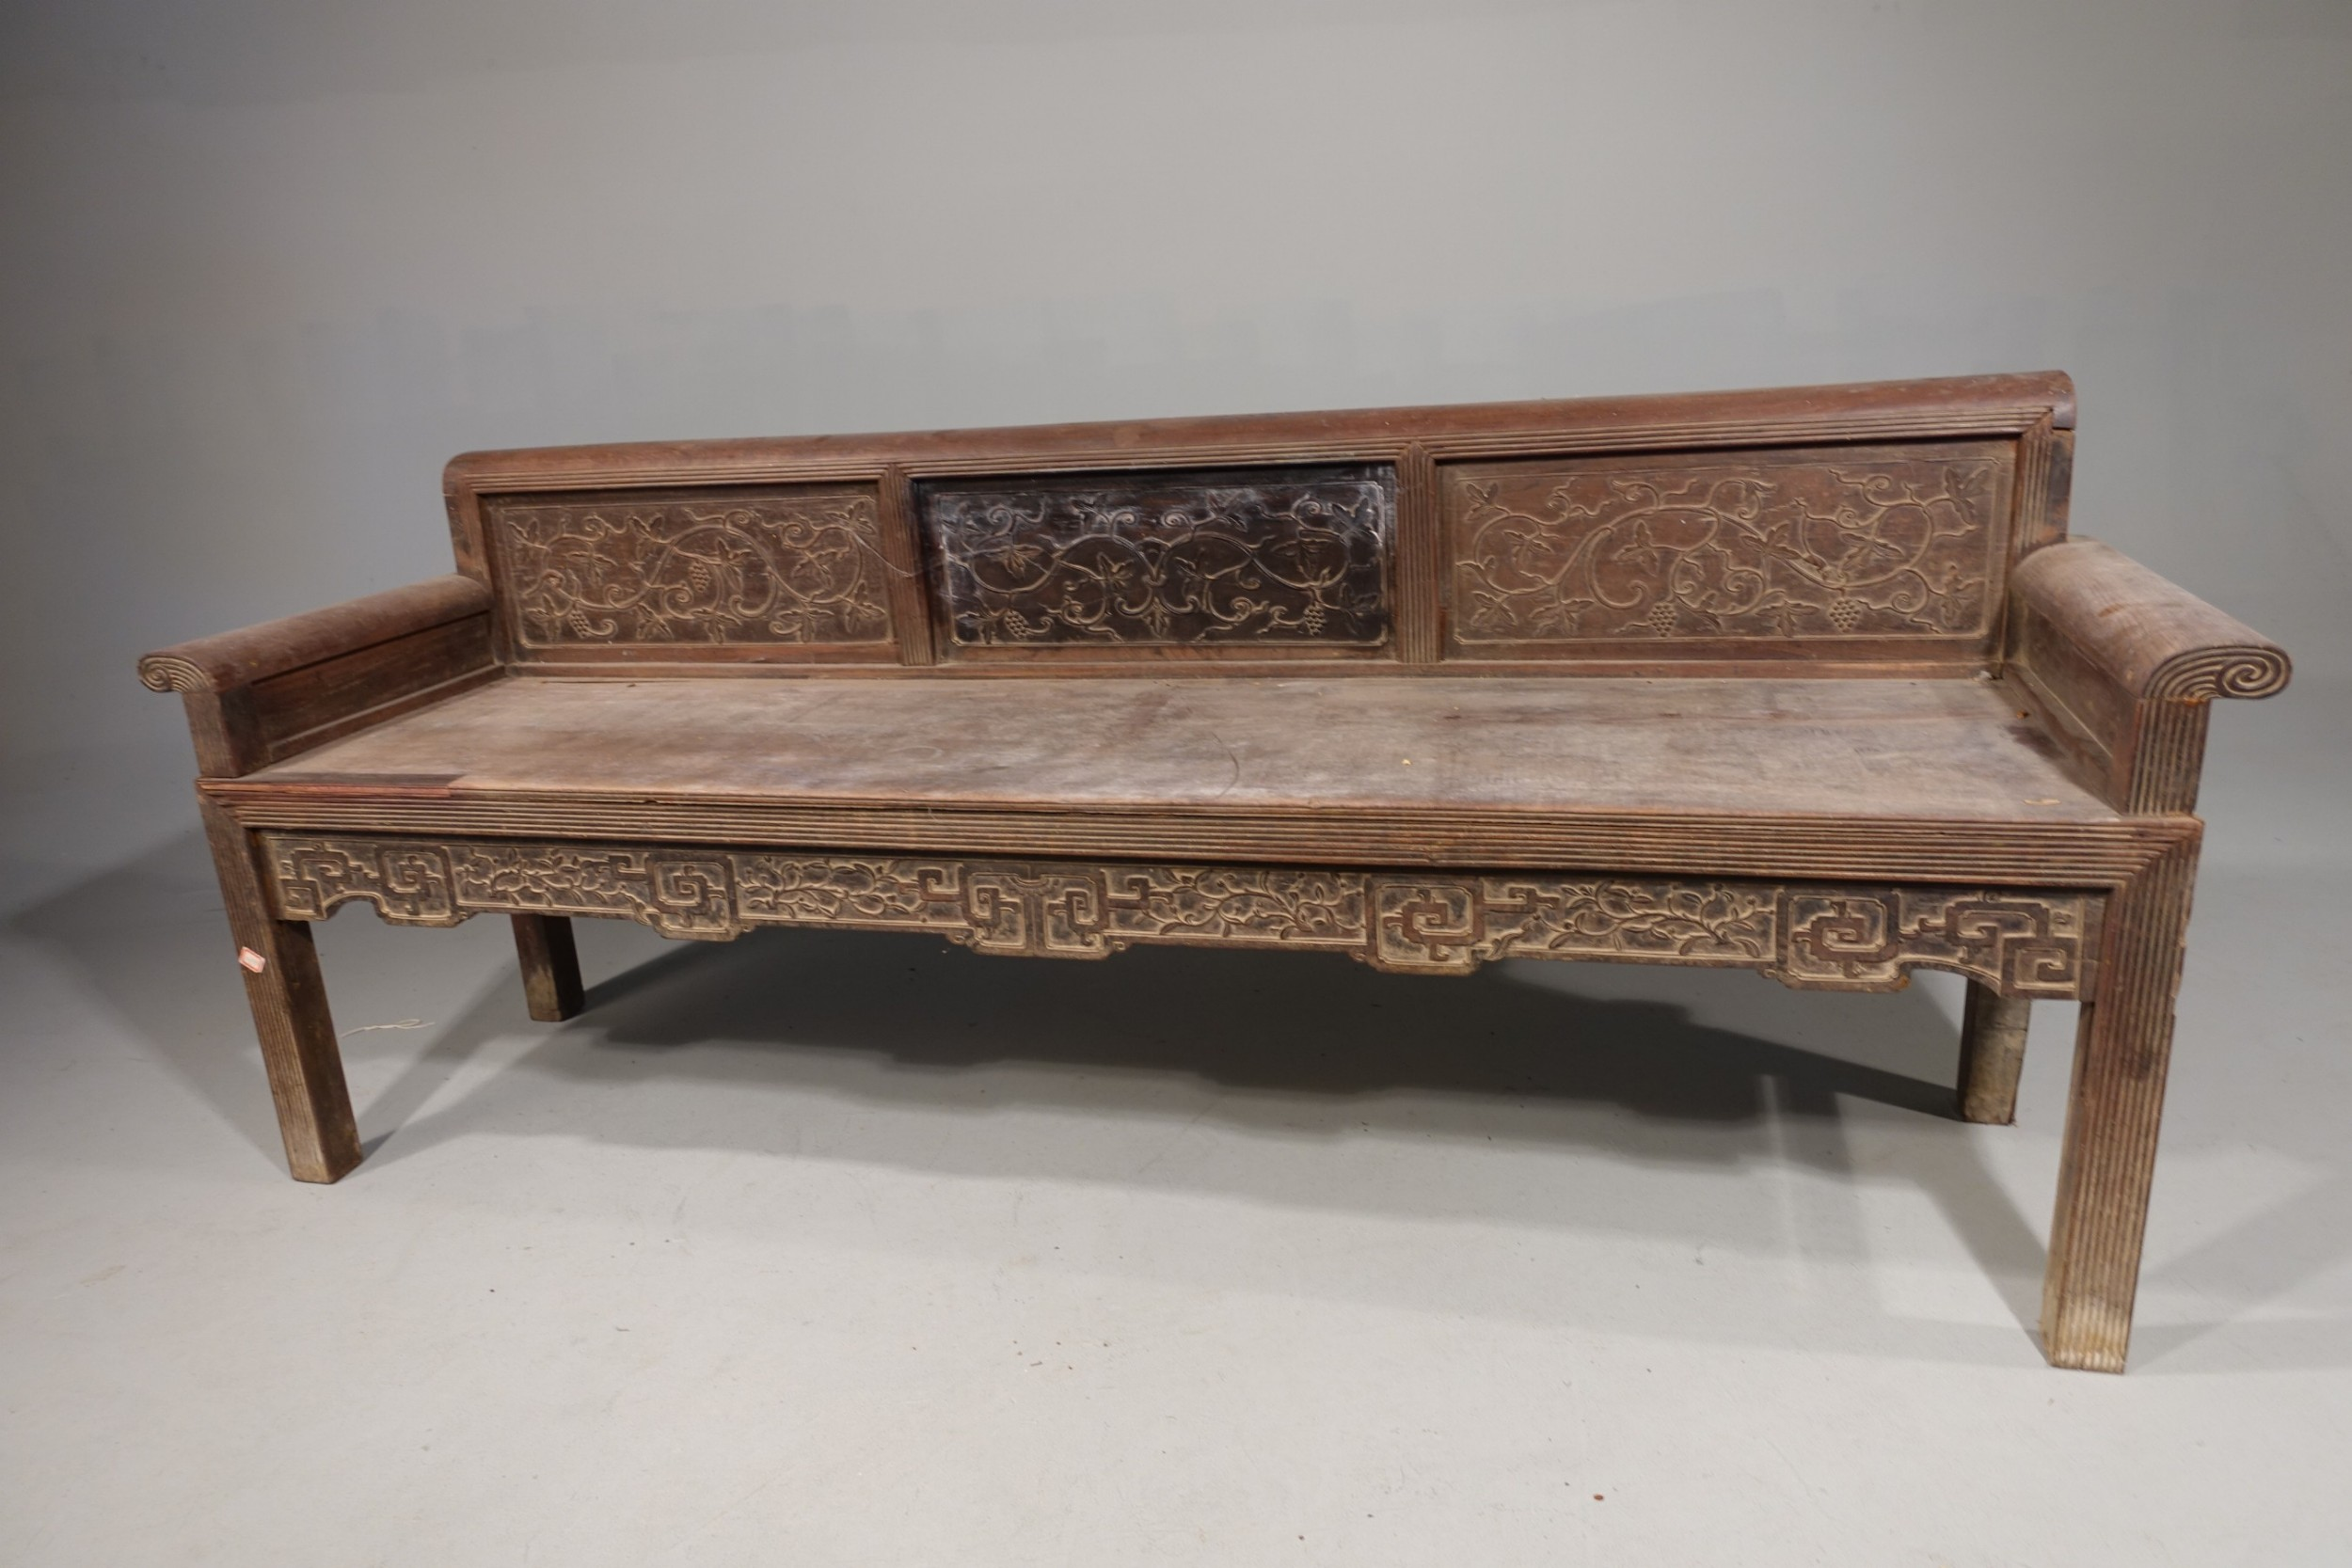 a quite rare early 20th century hardwood bench